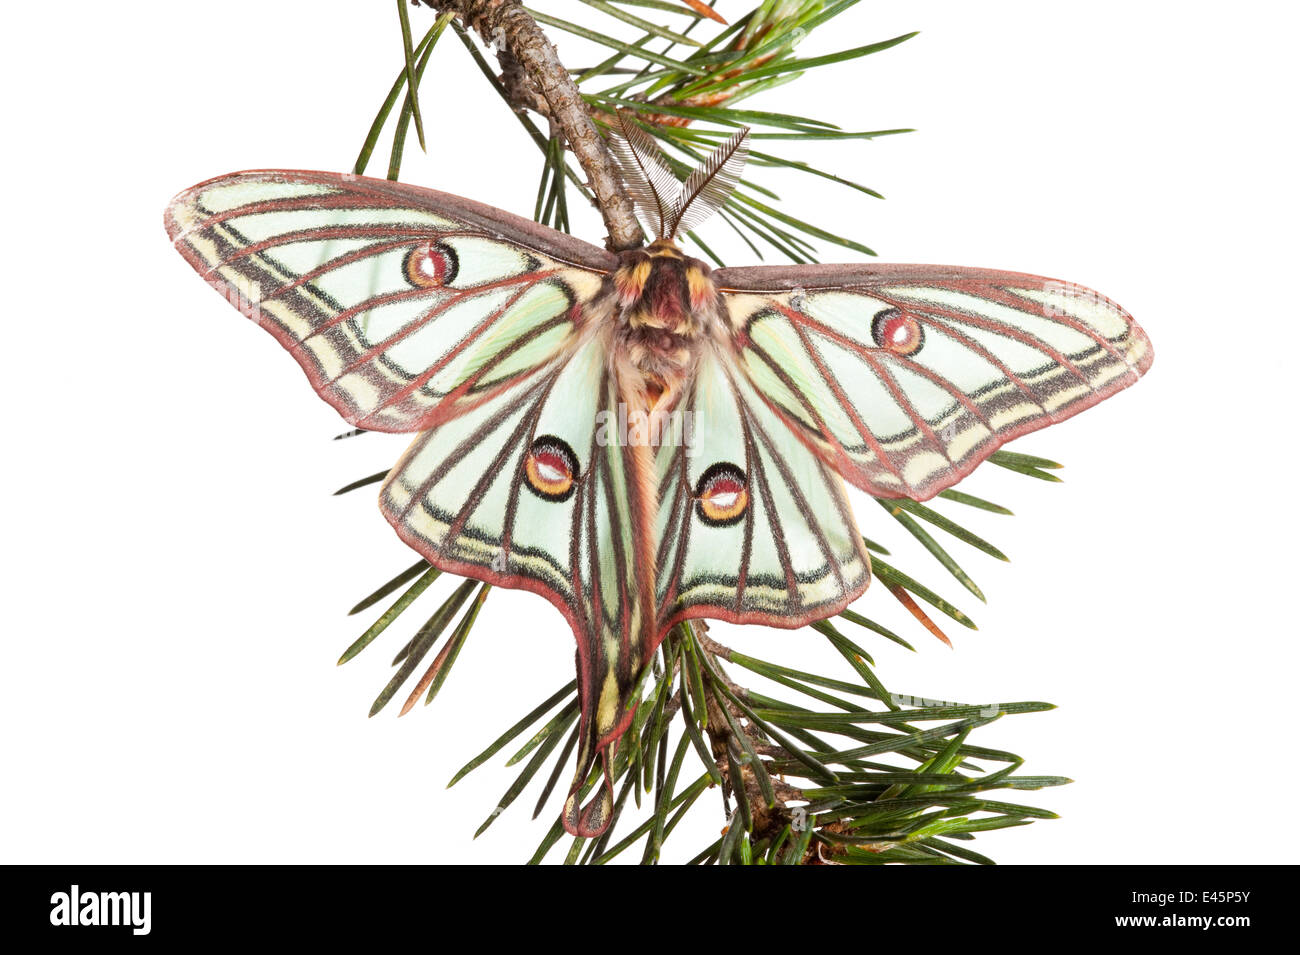 Male Spanish luna / Isabelline moth (Graellsia isabellina) on twig, Queyras Natural Park, France, May 2009 WWE OUTDOOR - Stock Image